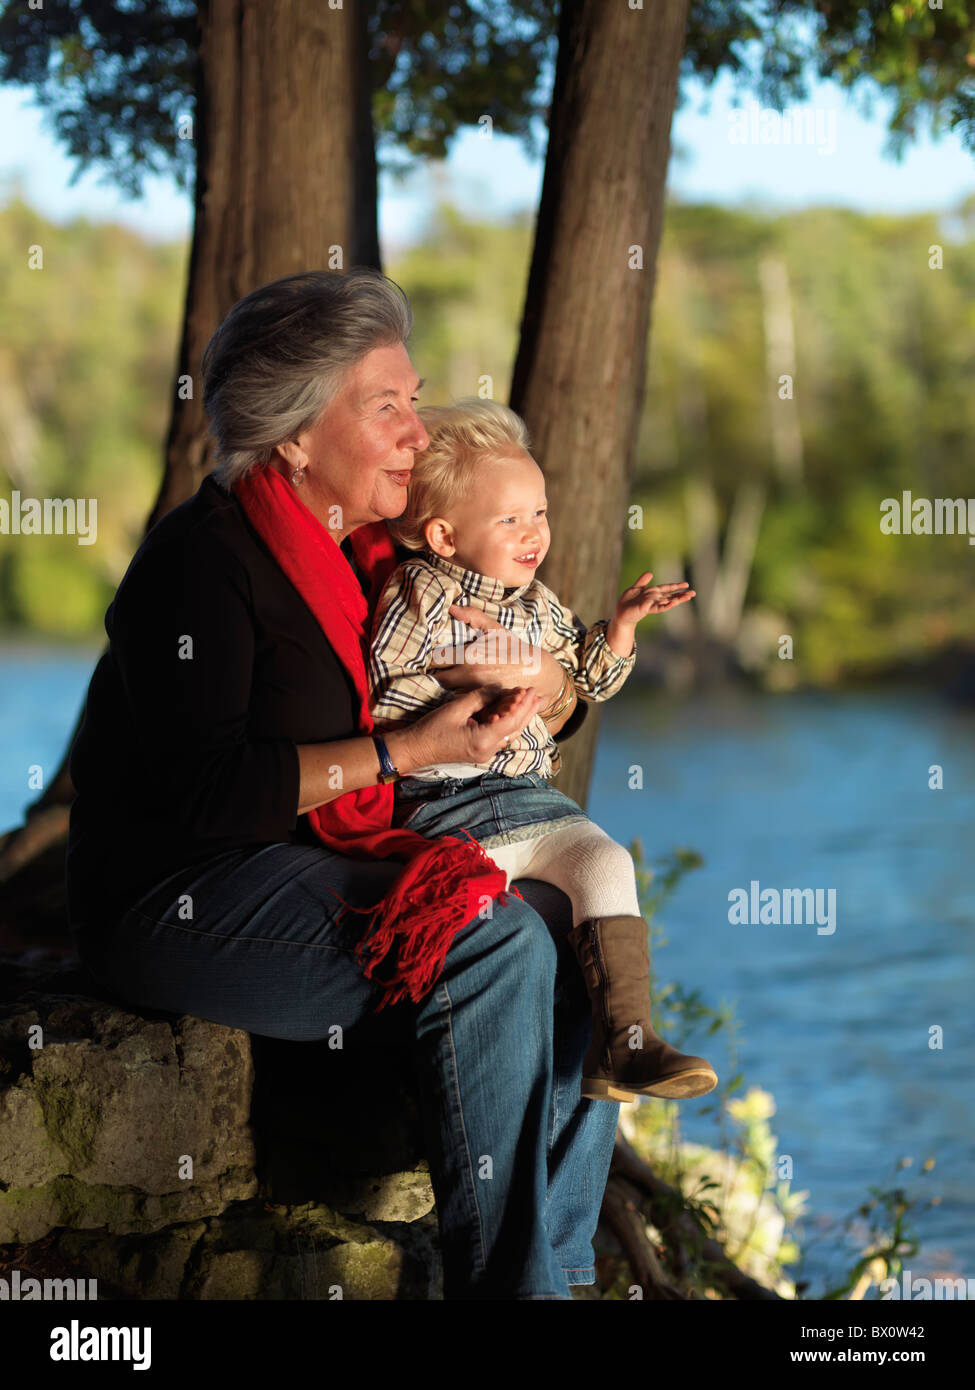 Grandma with her two year old granddaughter enjoying their time in the nature. Ontario, Canada. - Stock Image